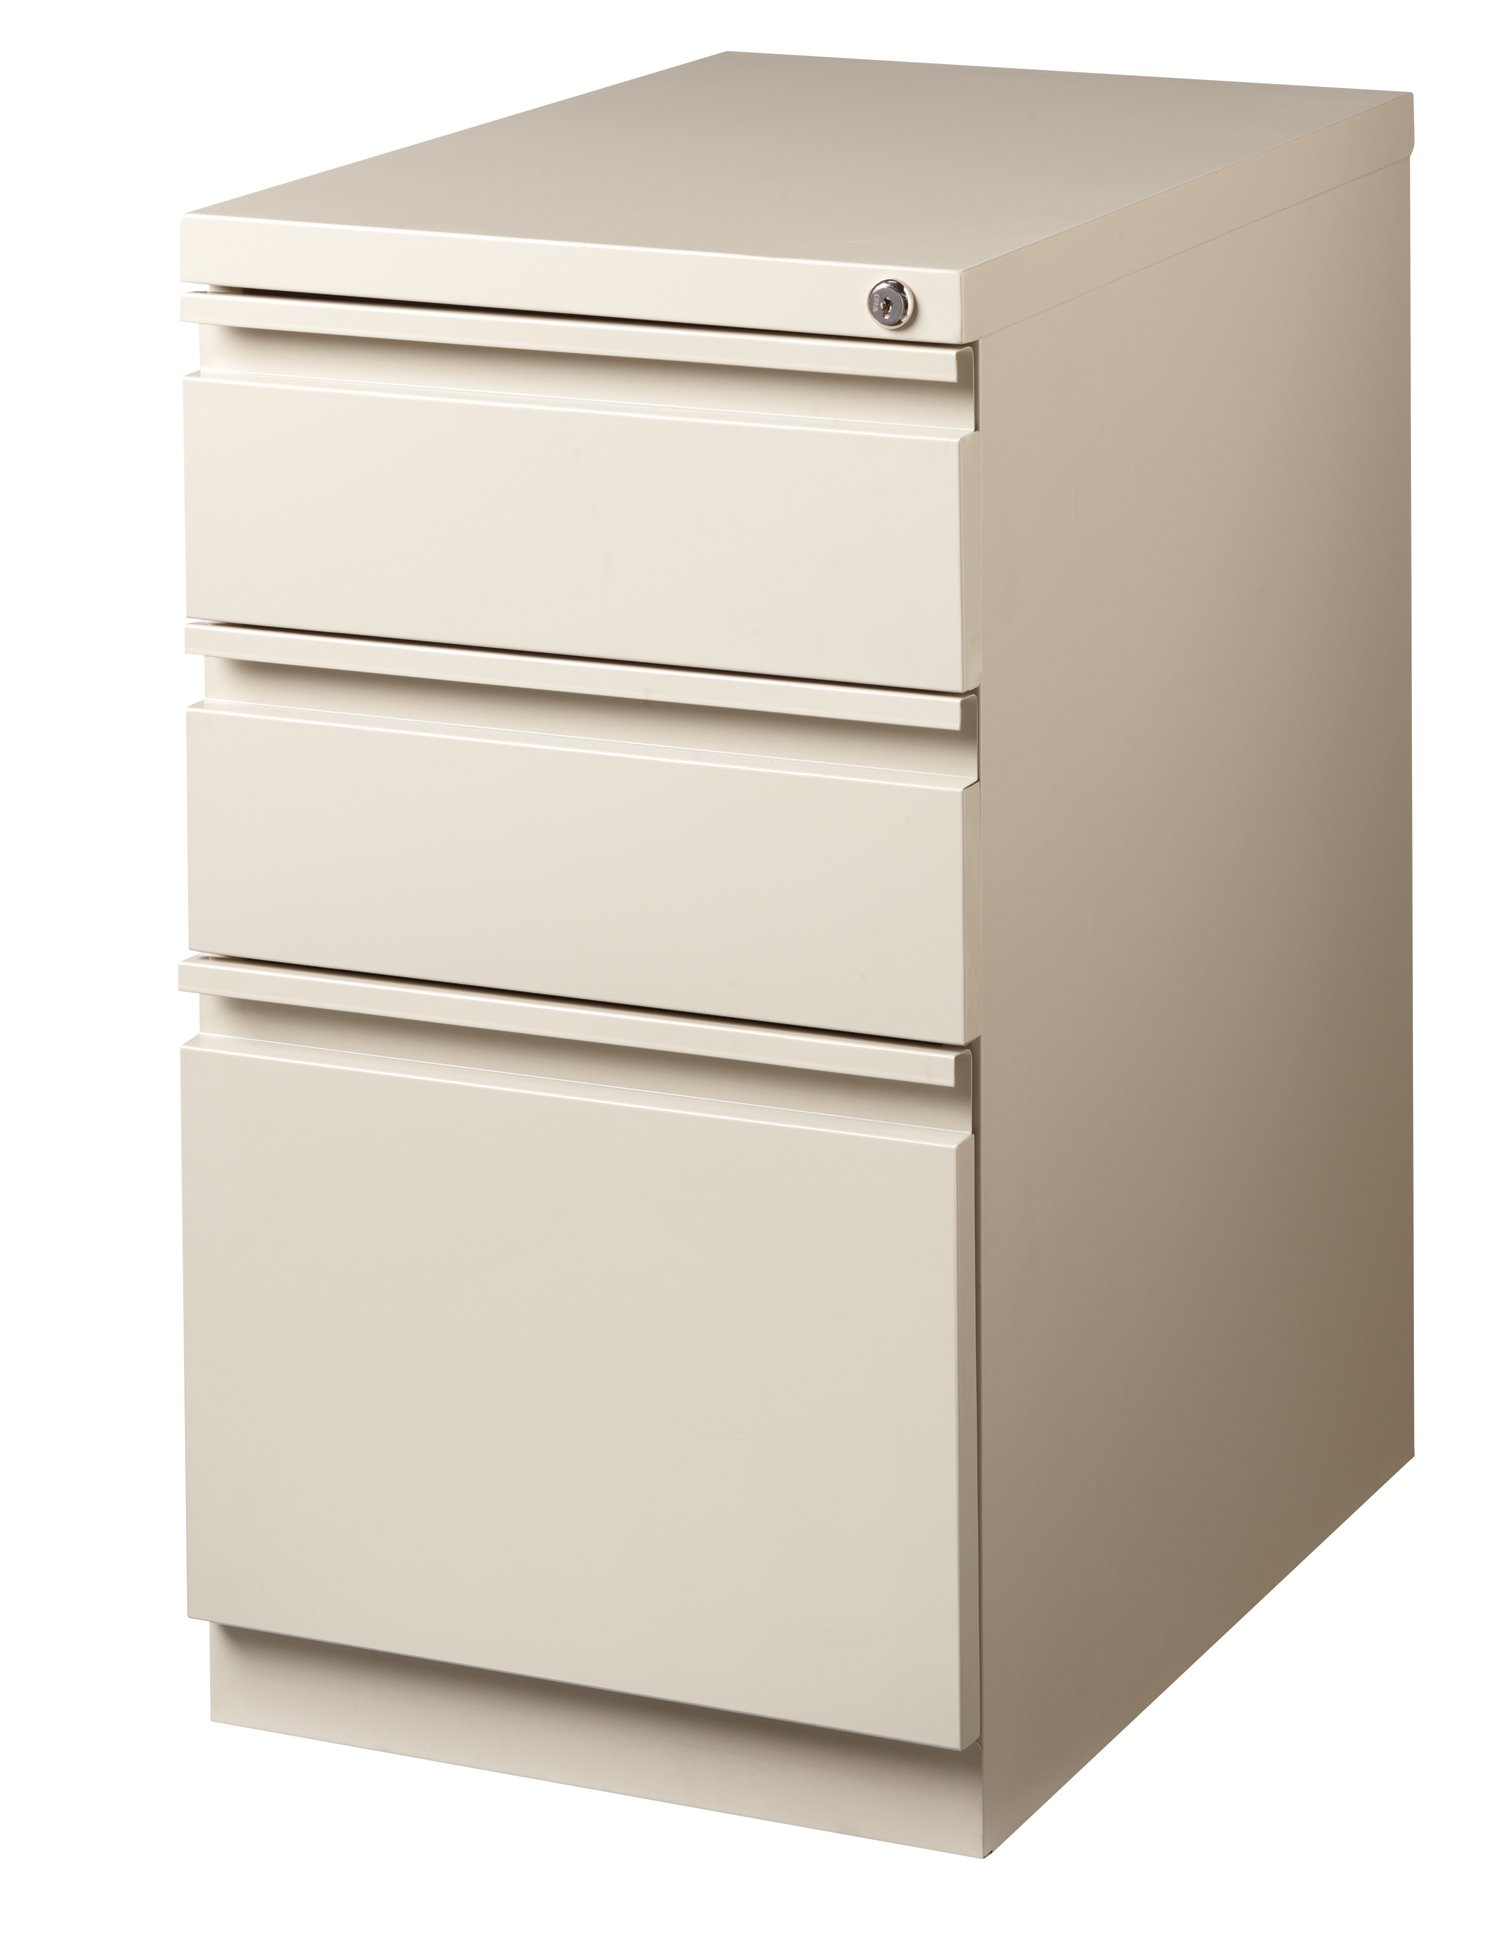 Office Dimensions Commercial Grade 20'' Deep Mobile Pedestal File Cabinet, 3 Drawers (2 Storage, 1 File), Putty